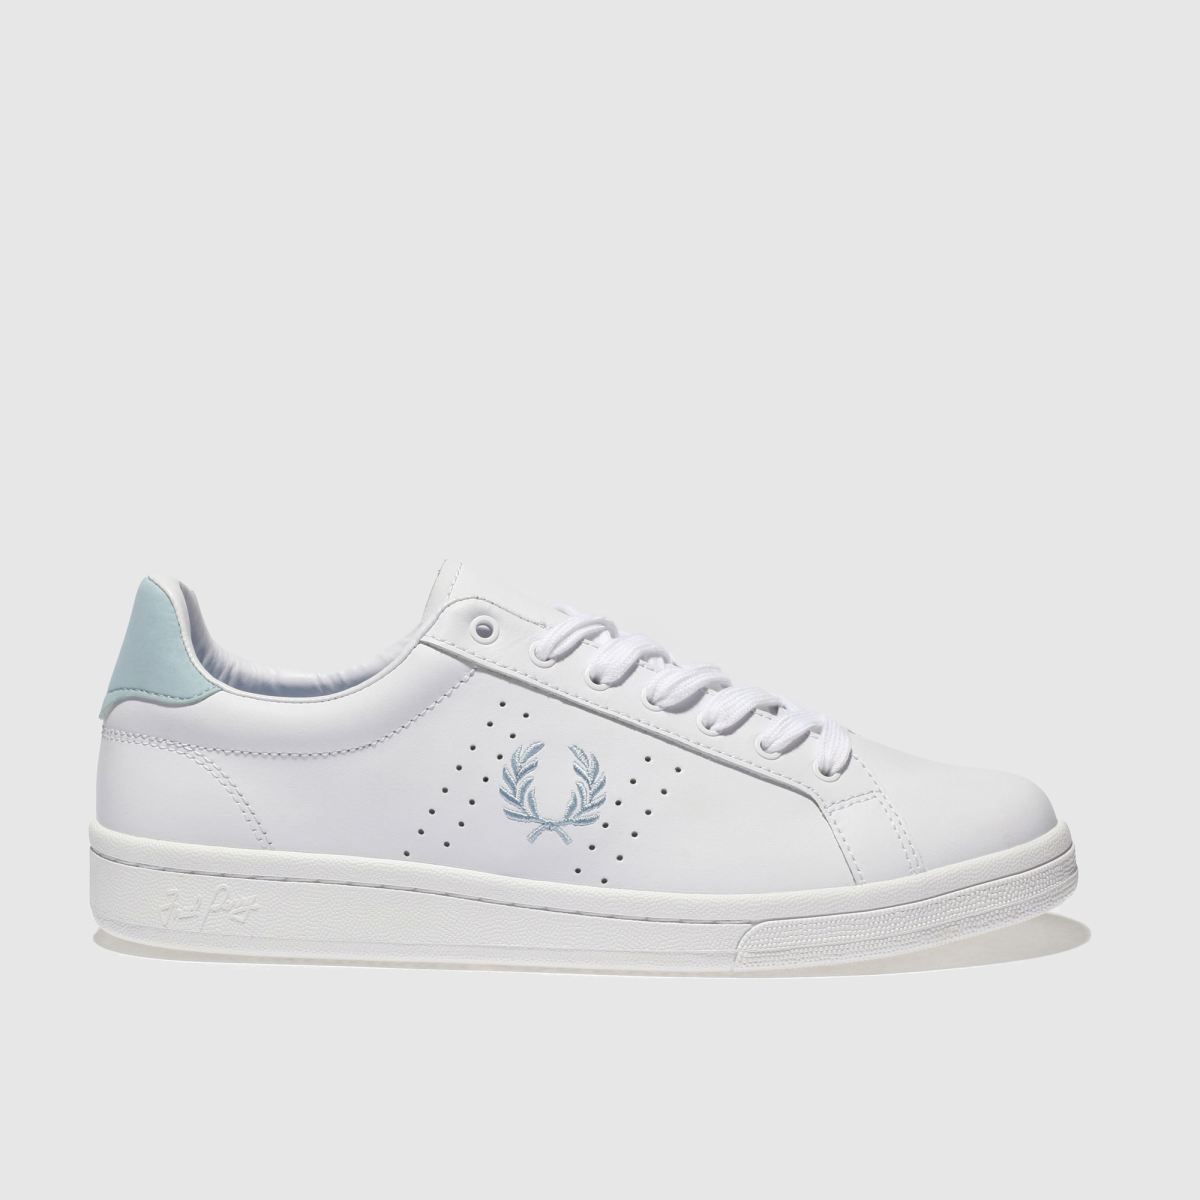 Fred Perry White & Pl Blue B721 Leather Trainers